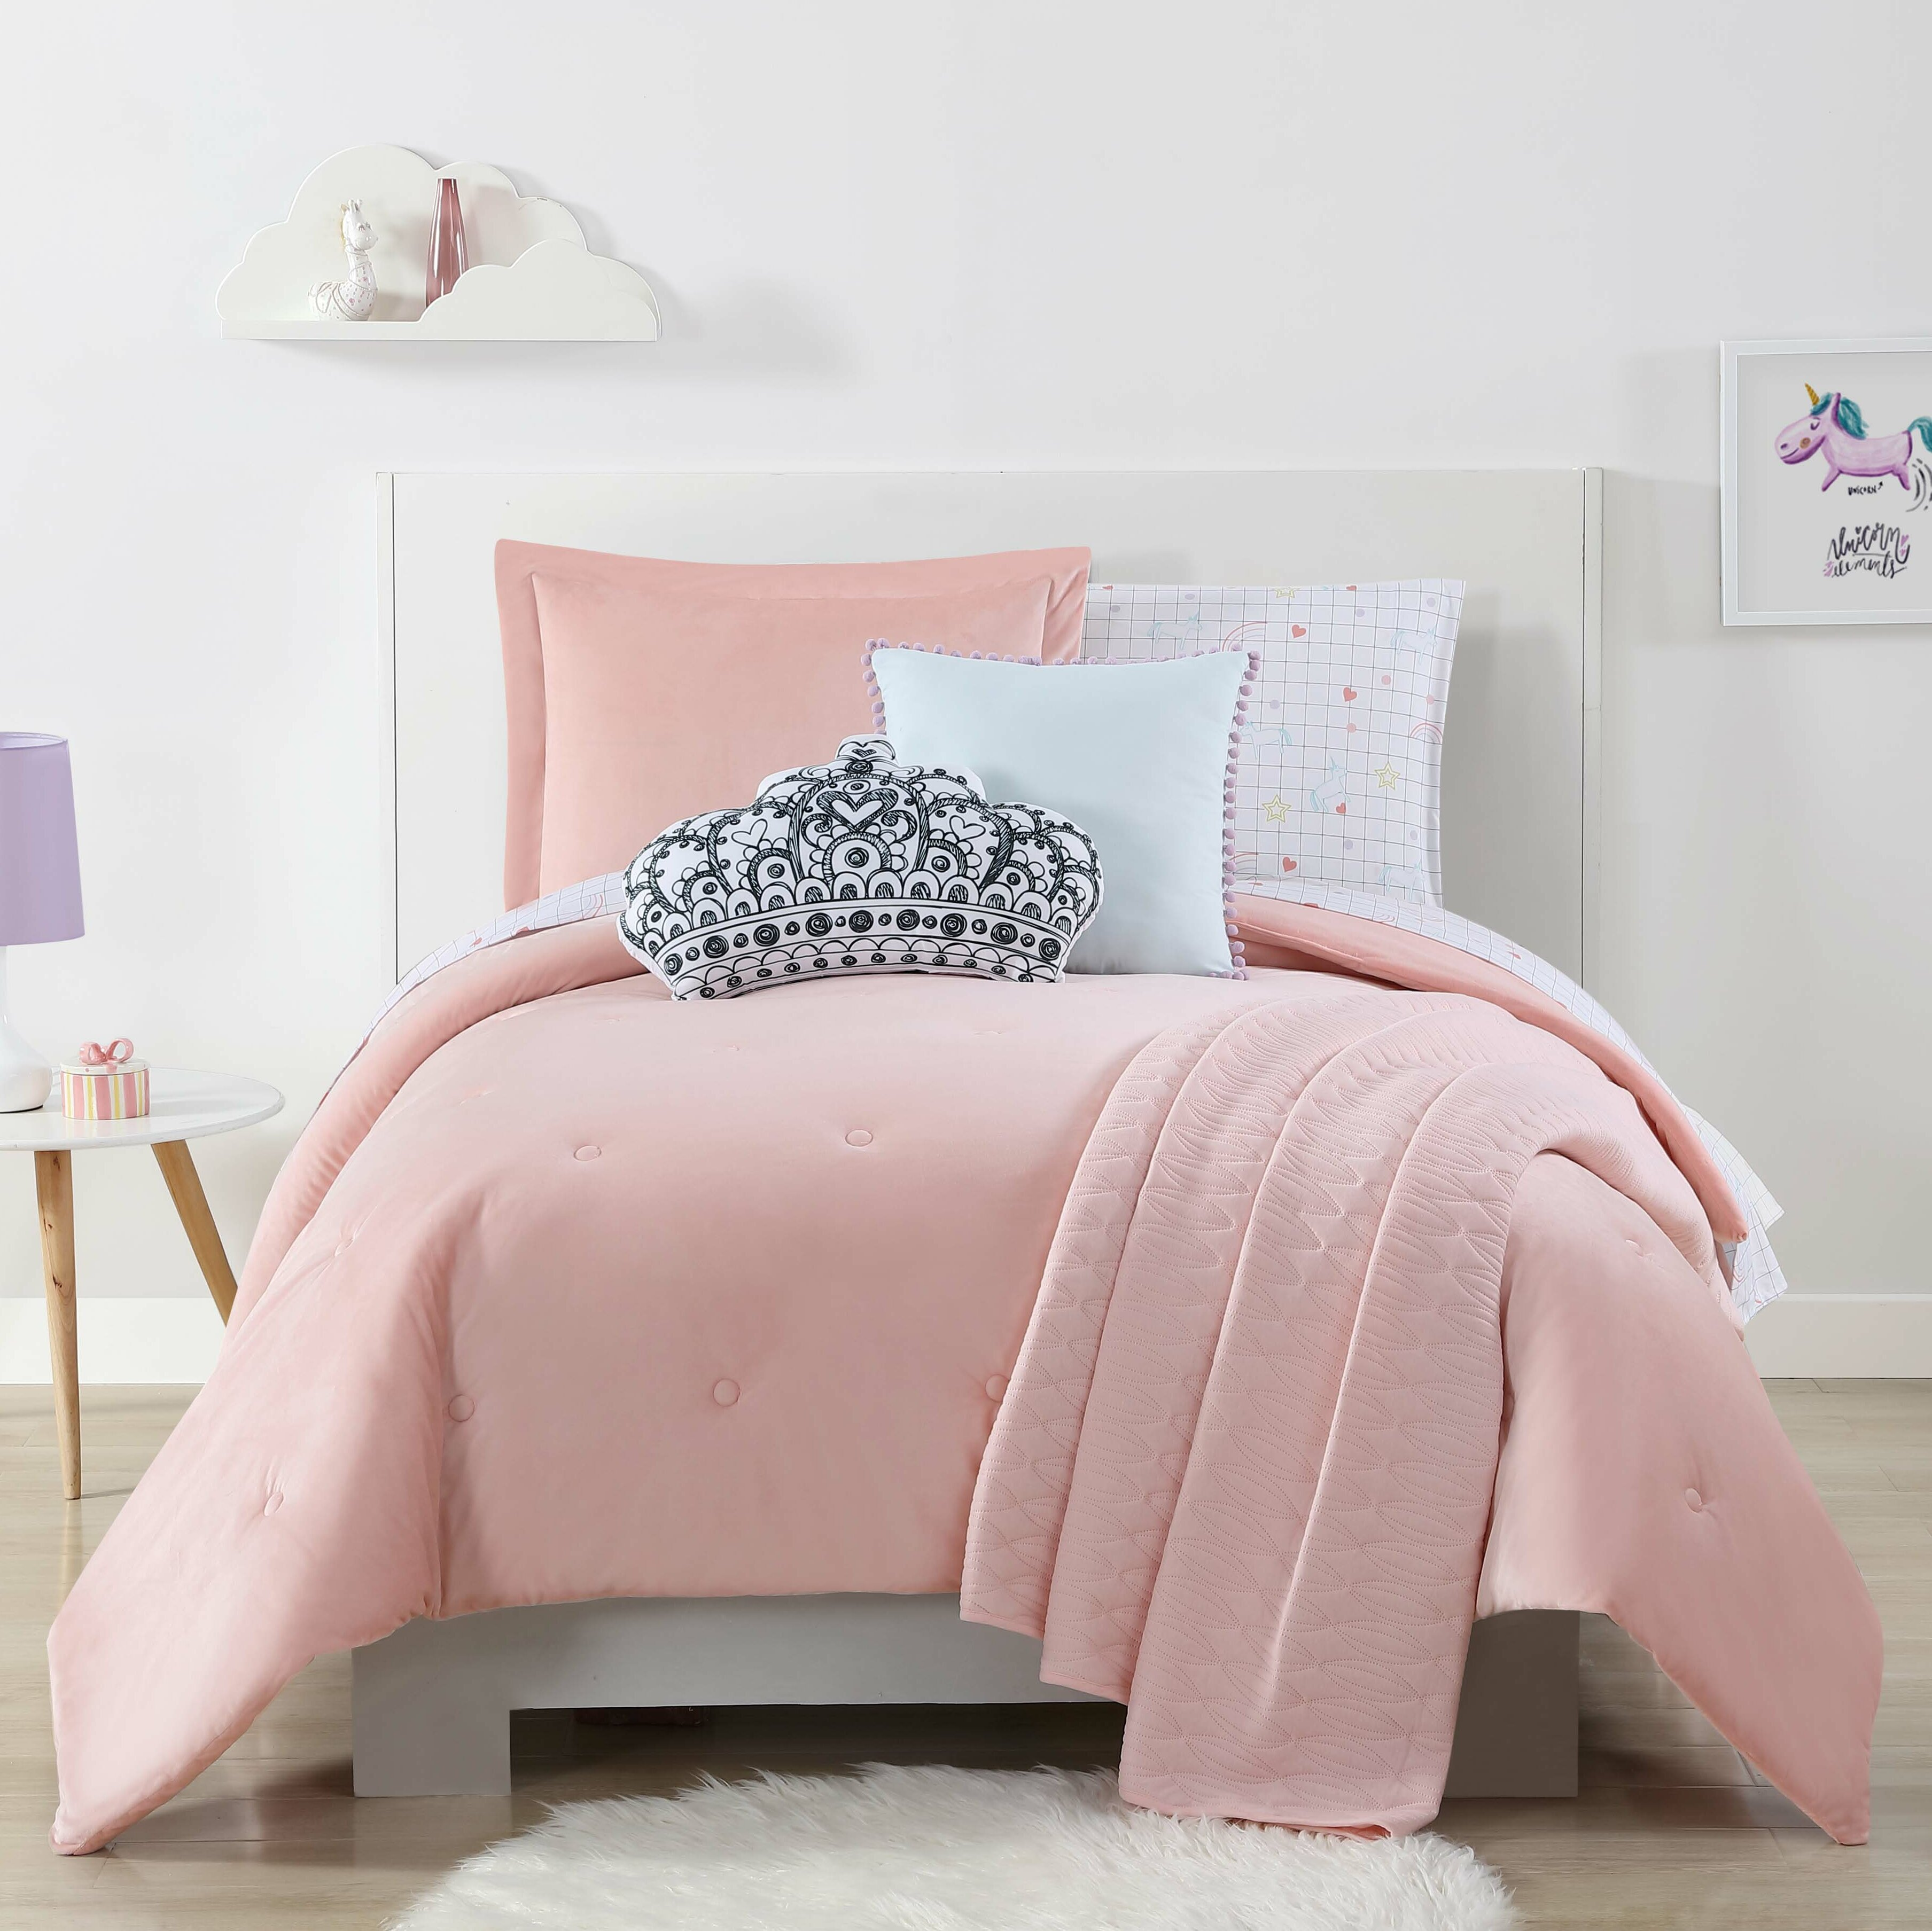 ideas archaicawful gray blush sheets grey rose peach comforter bedding colored images and